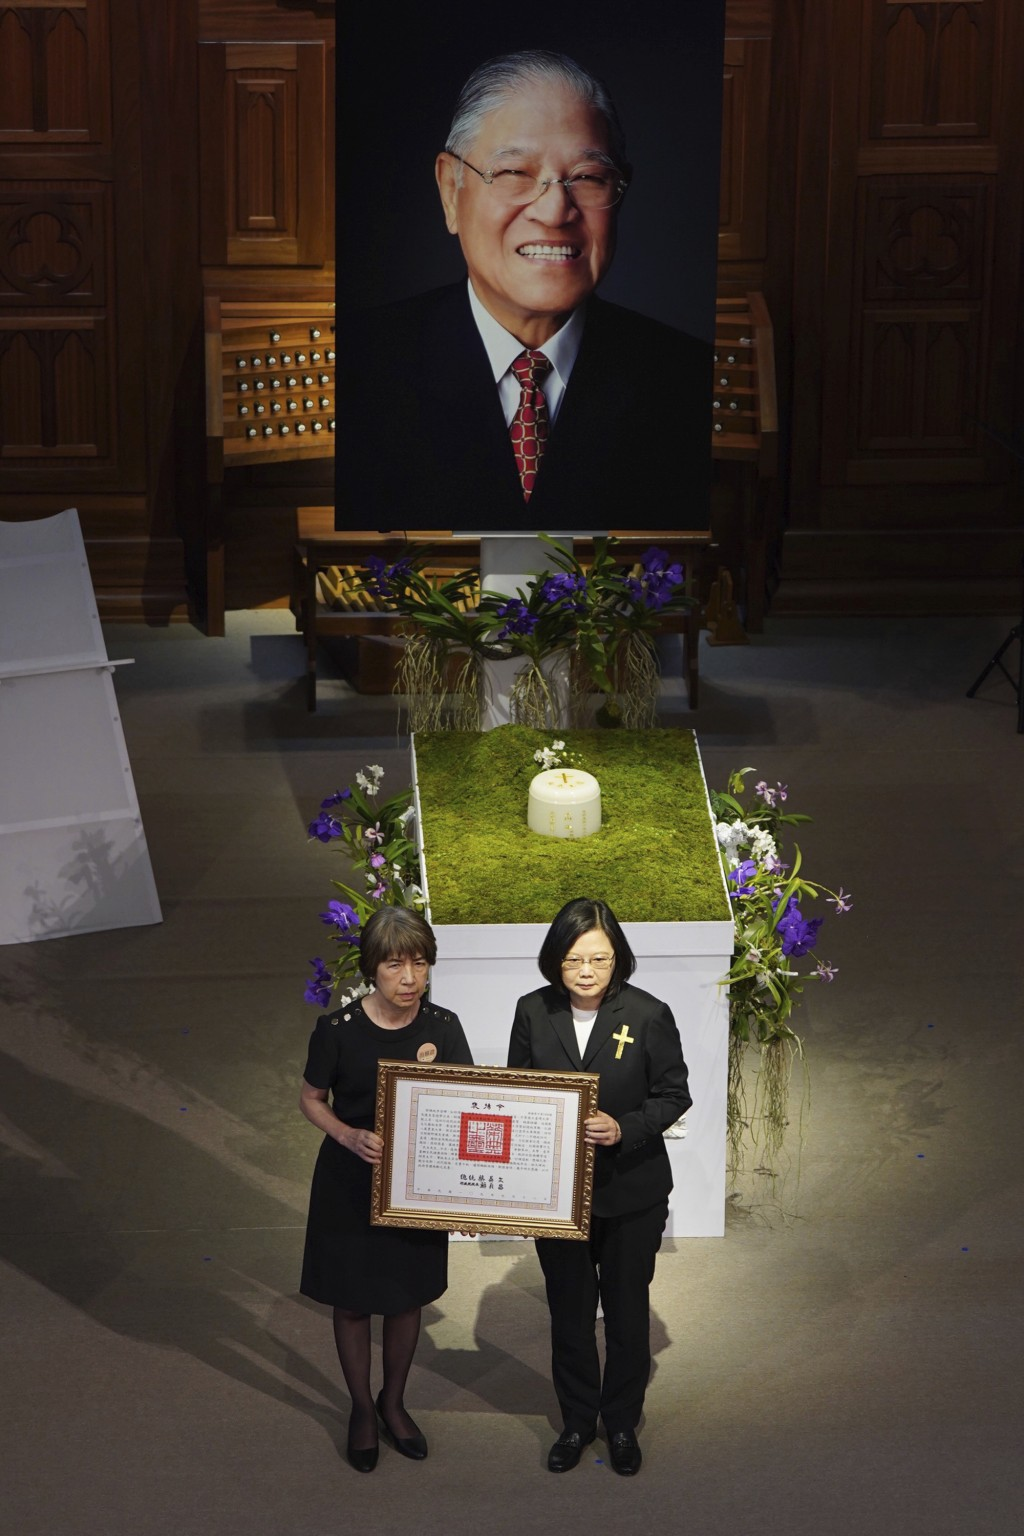 Taiwan President Tsai Ing-wen, right, attends a memorial service for former President Lee Teng-hui with his daughter in Taipei, Taiwan on Saturday, Se...